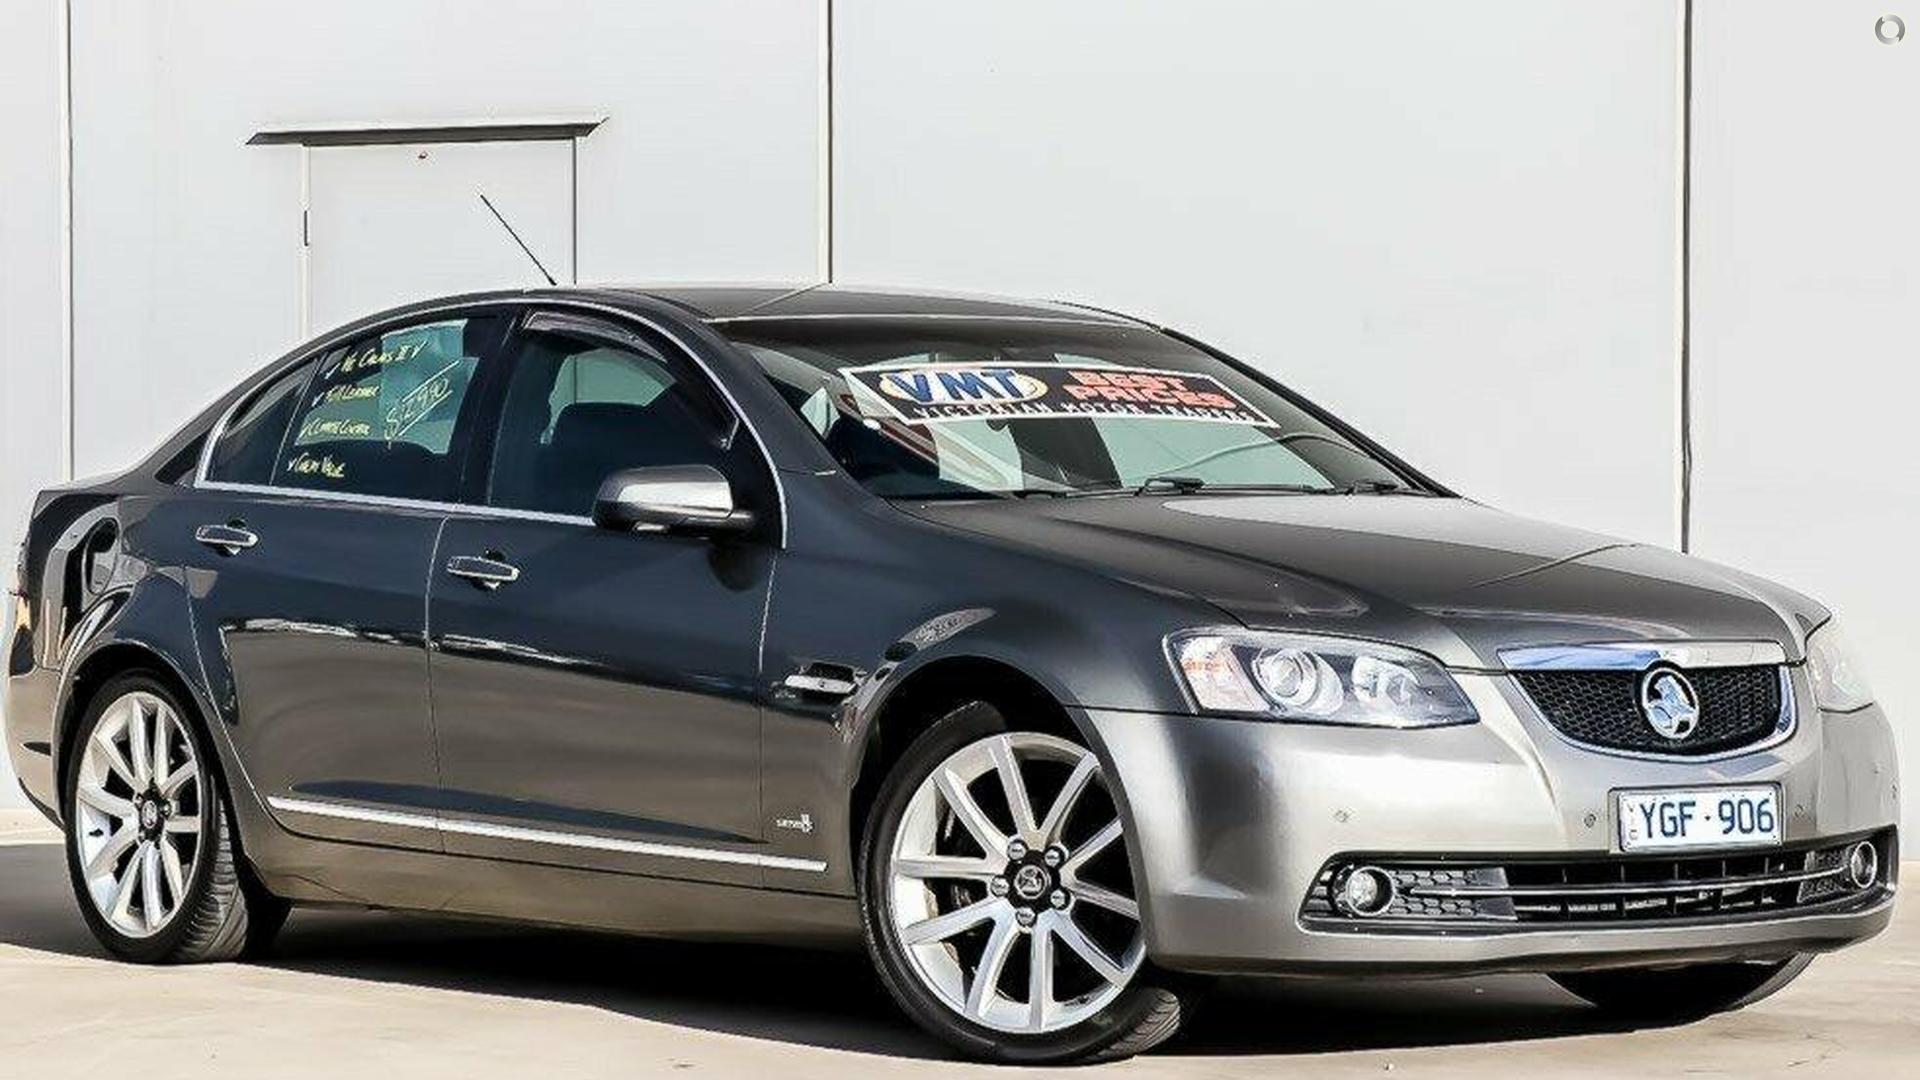 2011 Holden Calais VE Series II